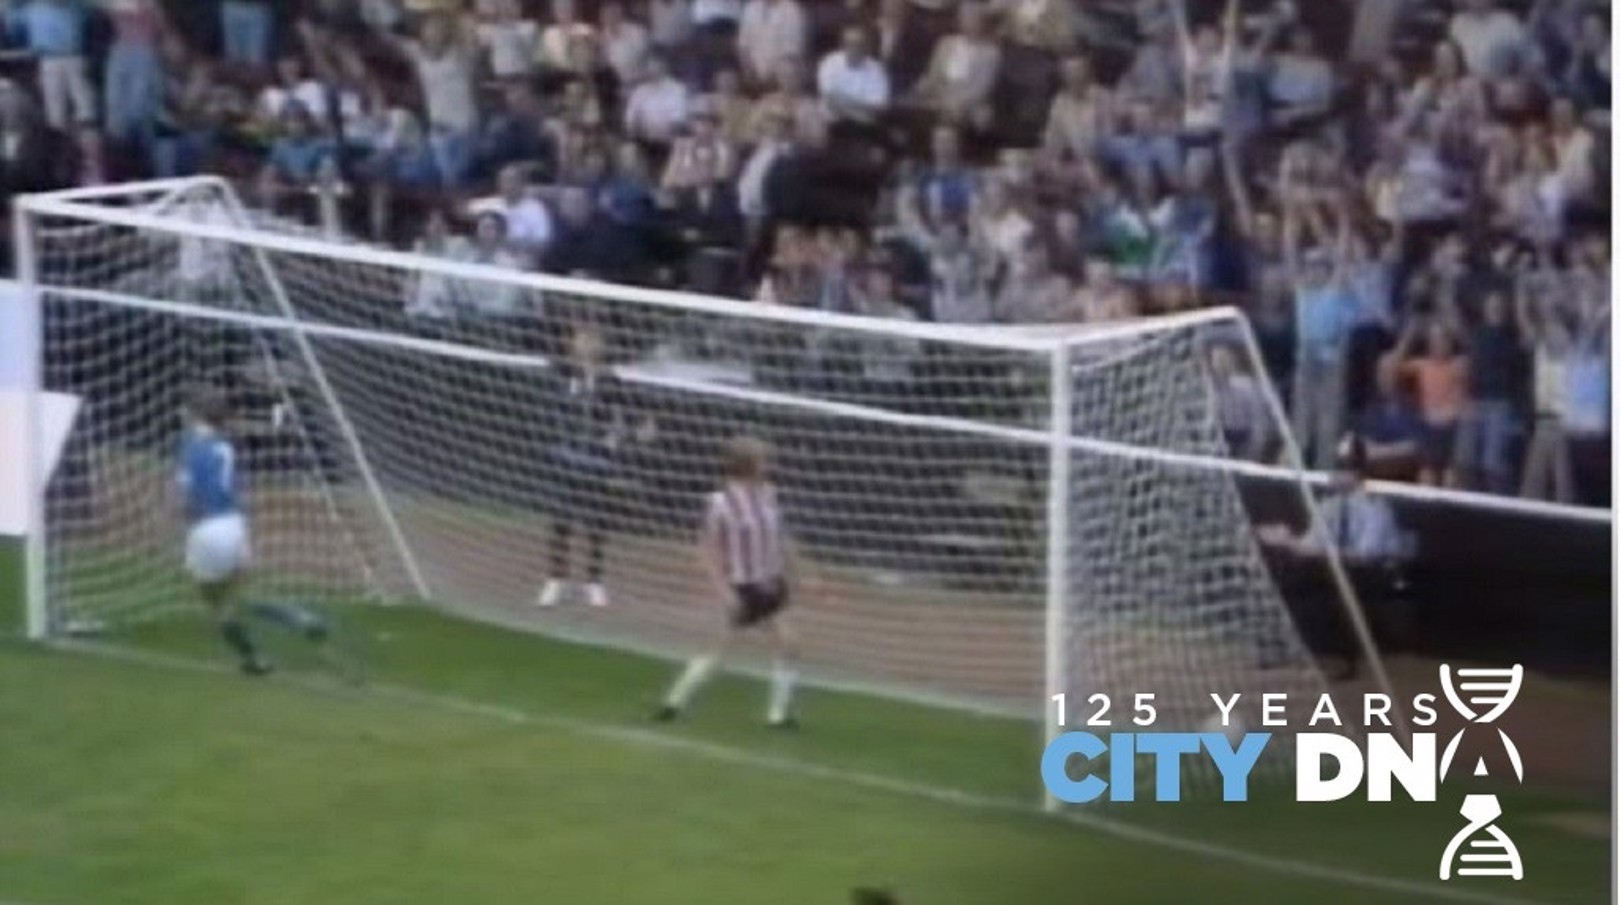 City DNA #55: The Anglo-Scottish Cup fiasco